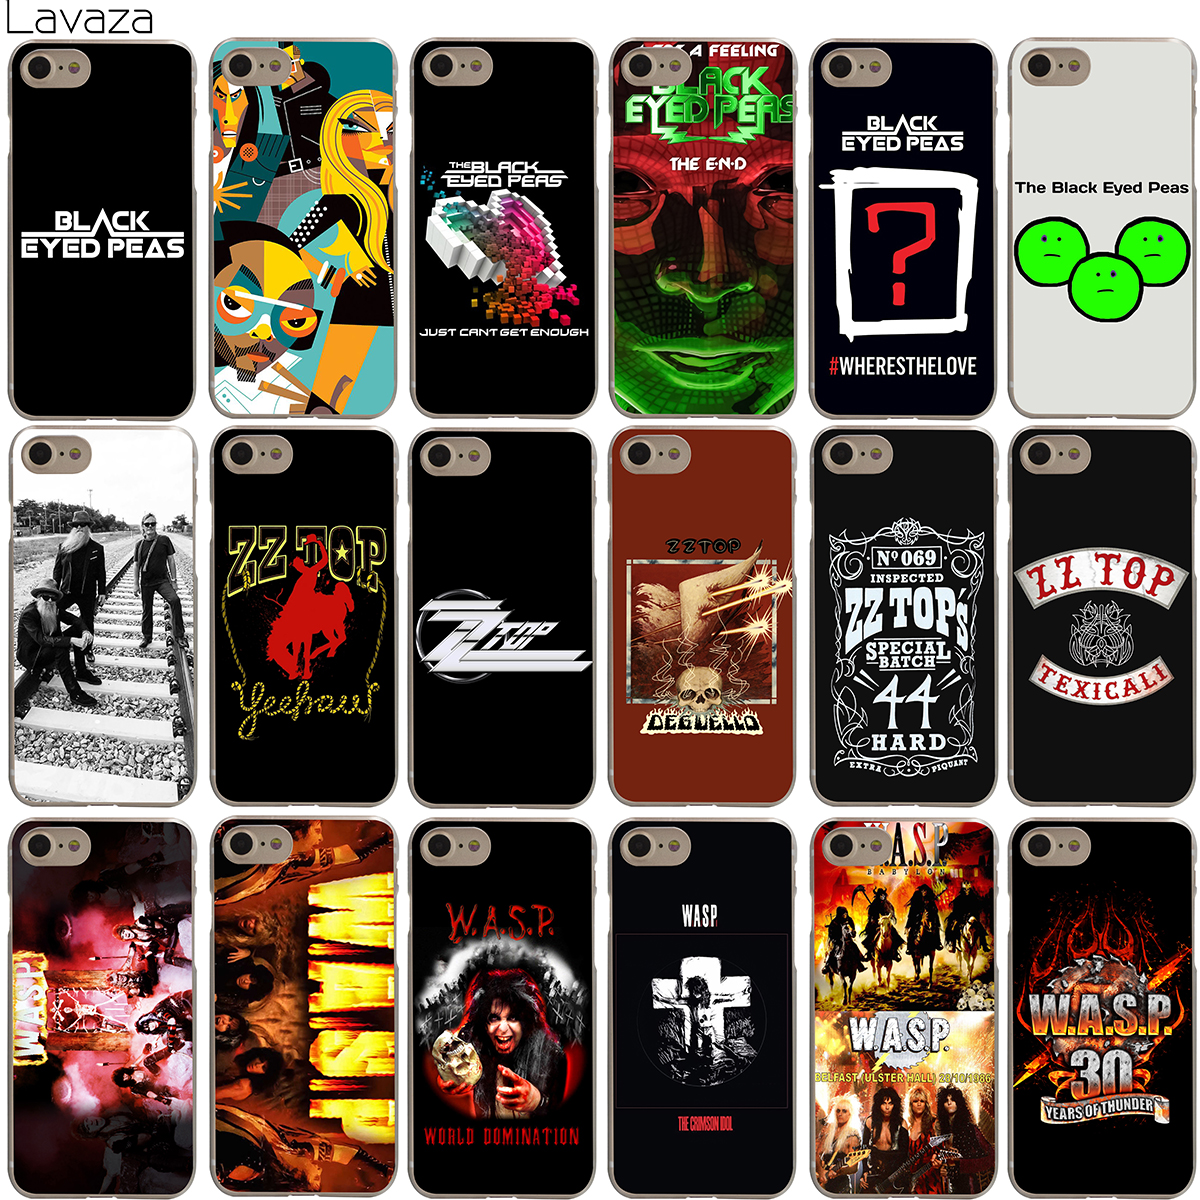 Lavaza The Black Eyed Peas ZZ Top W.A.S.P Band Case for iPhone 4 4S 5 5S SE 6 6S 7 8 X Plus